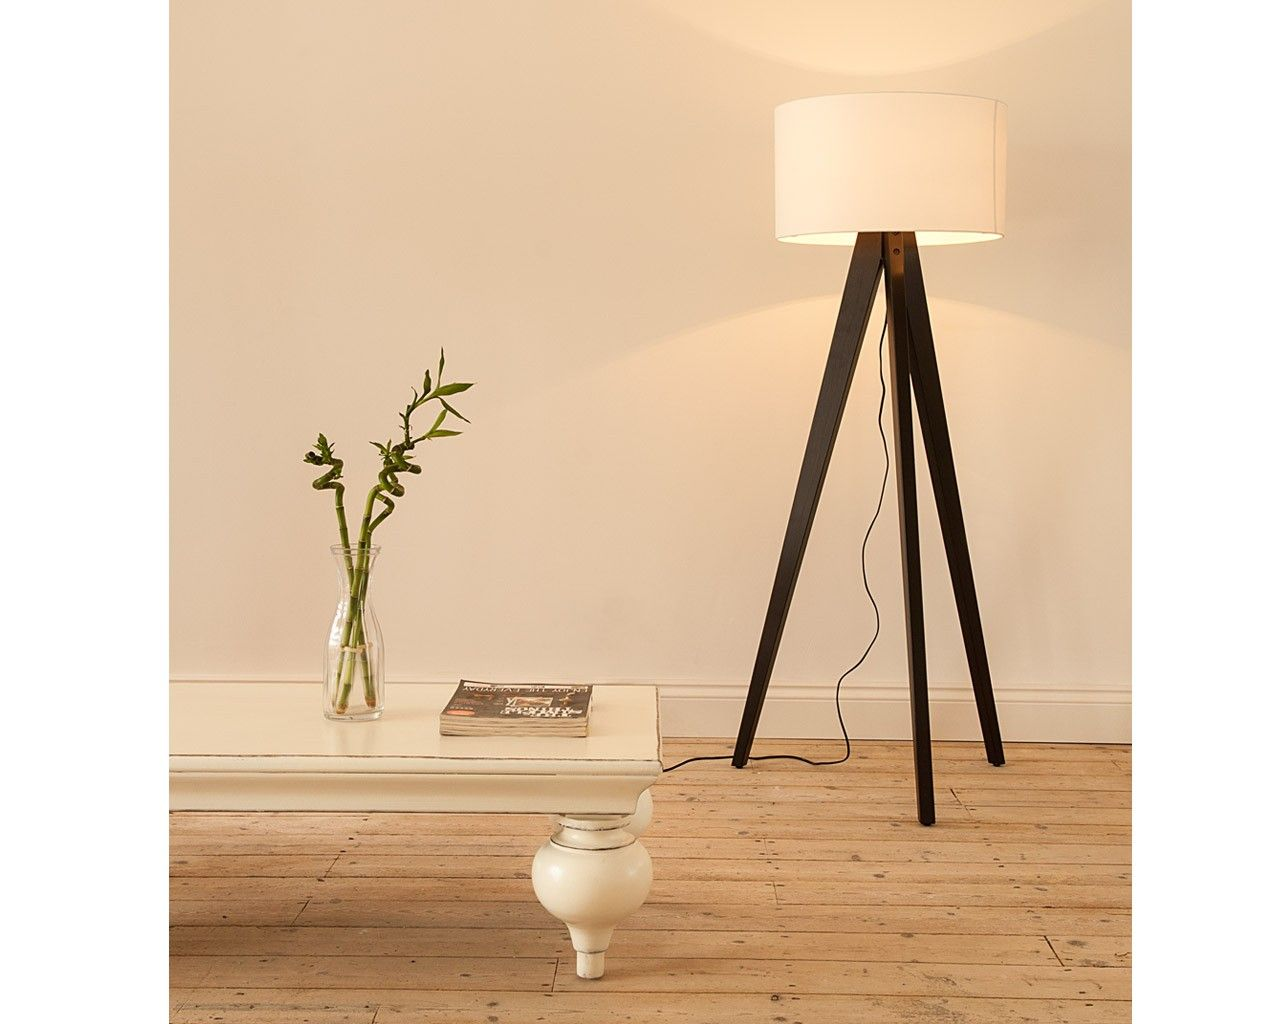 Furnitures affordable brown tripod wood floor lamp beside small furnitures affordable brown tripod wood floor lamp beside small flower vase and a book on mozeypictures Images